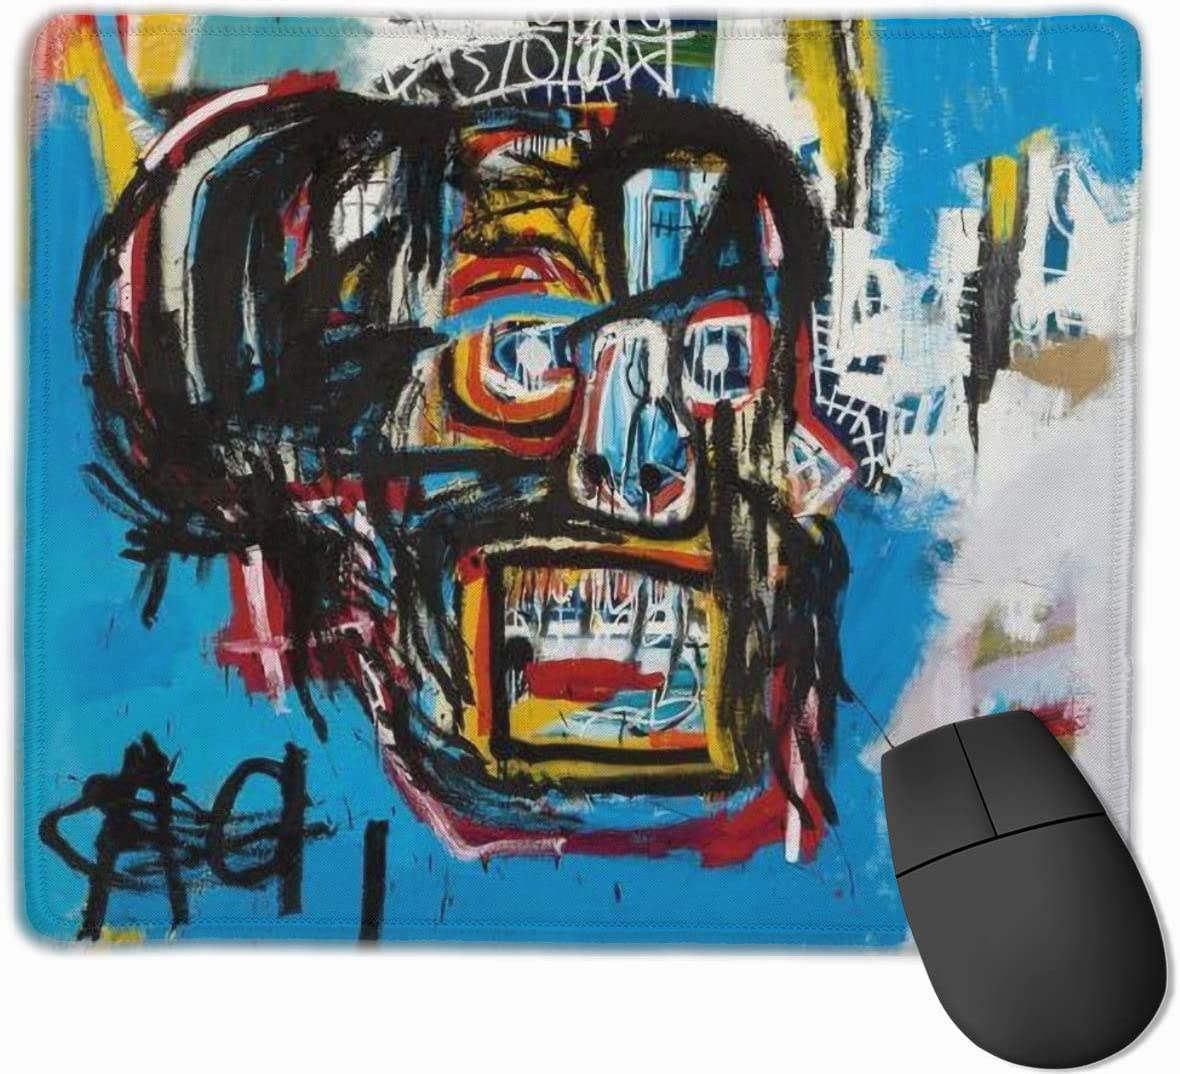 Qiumzzwee Jean Michel Basquiat Rectangle Non-Slip Rubber Mousepad Gaming Mouse Pad 25x30 cm